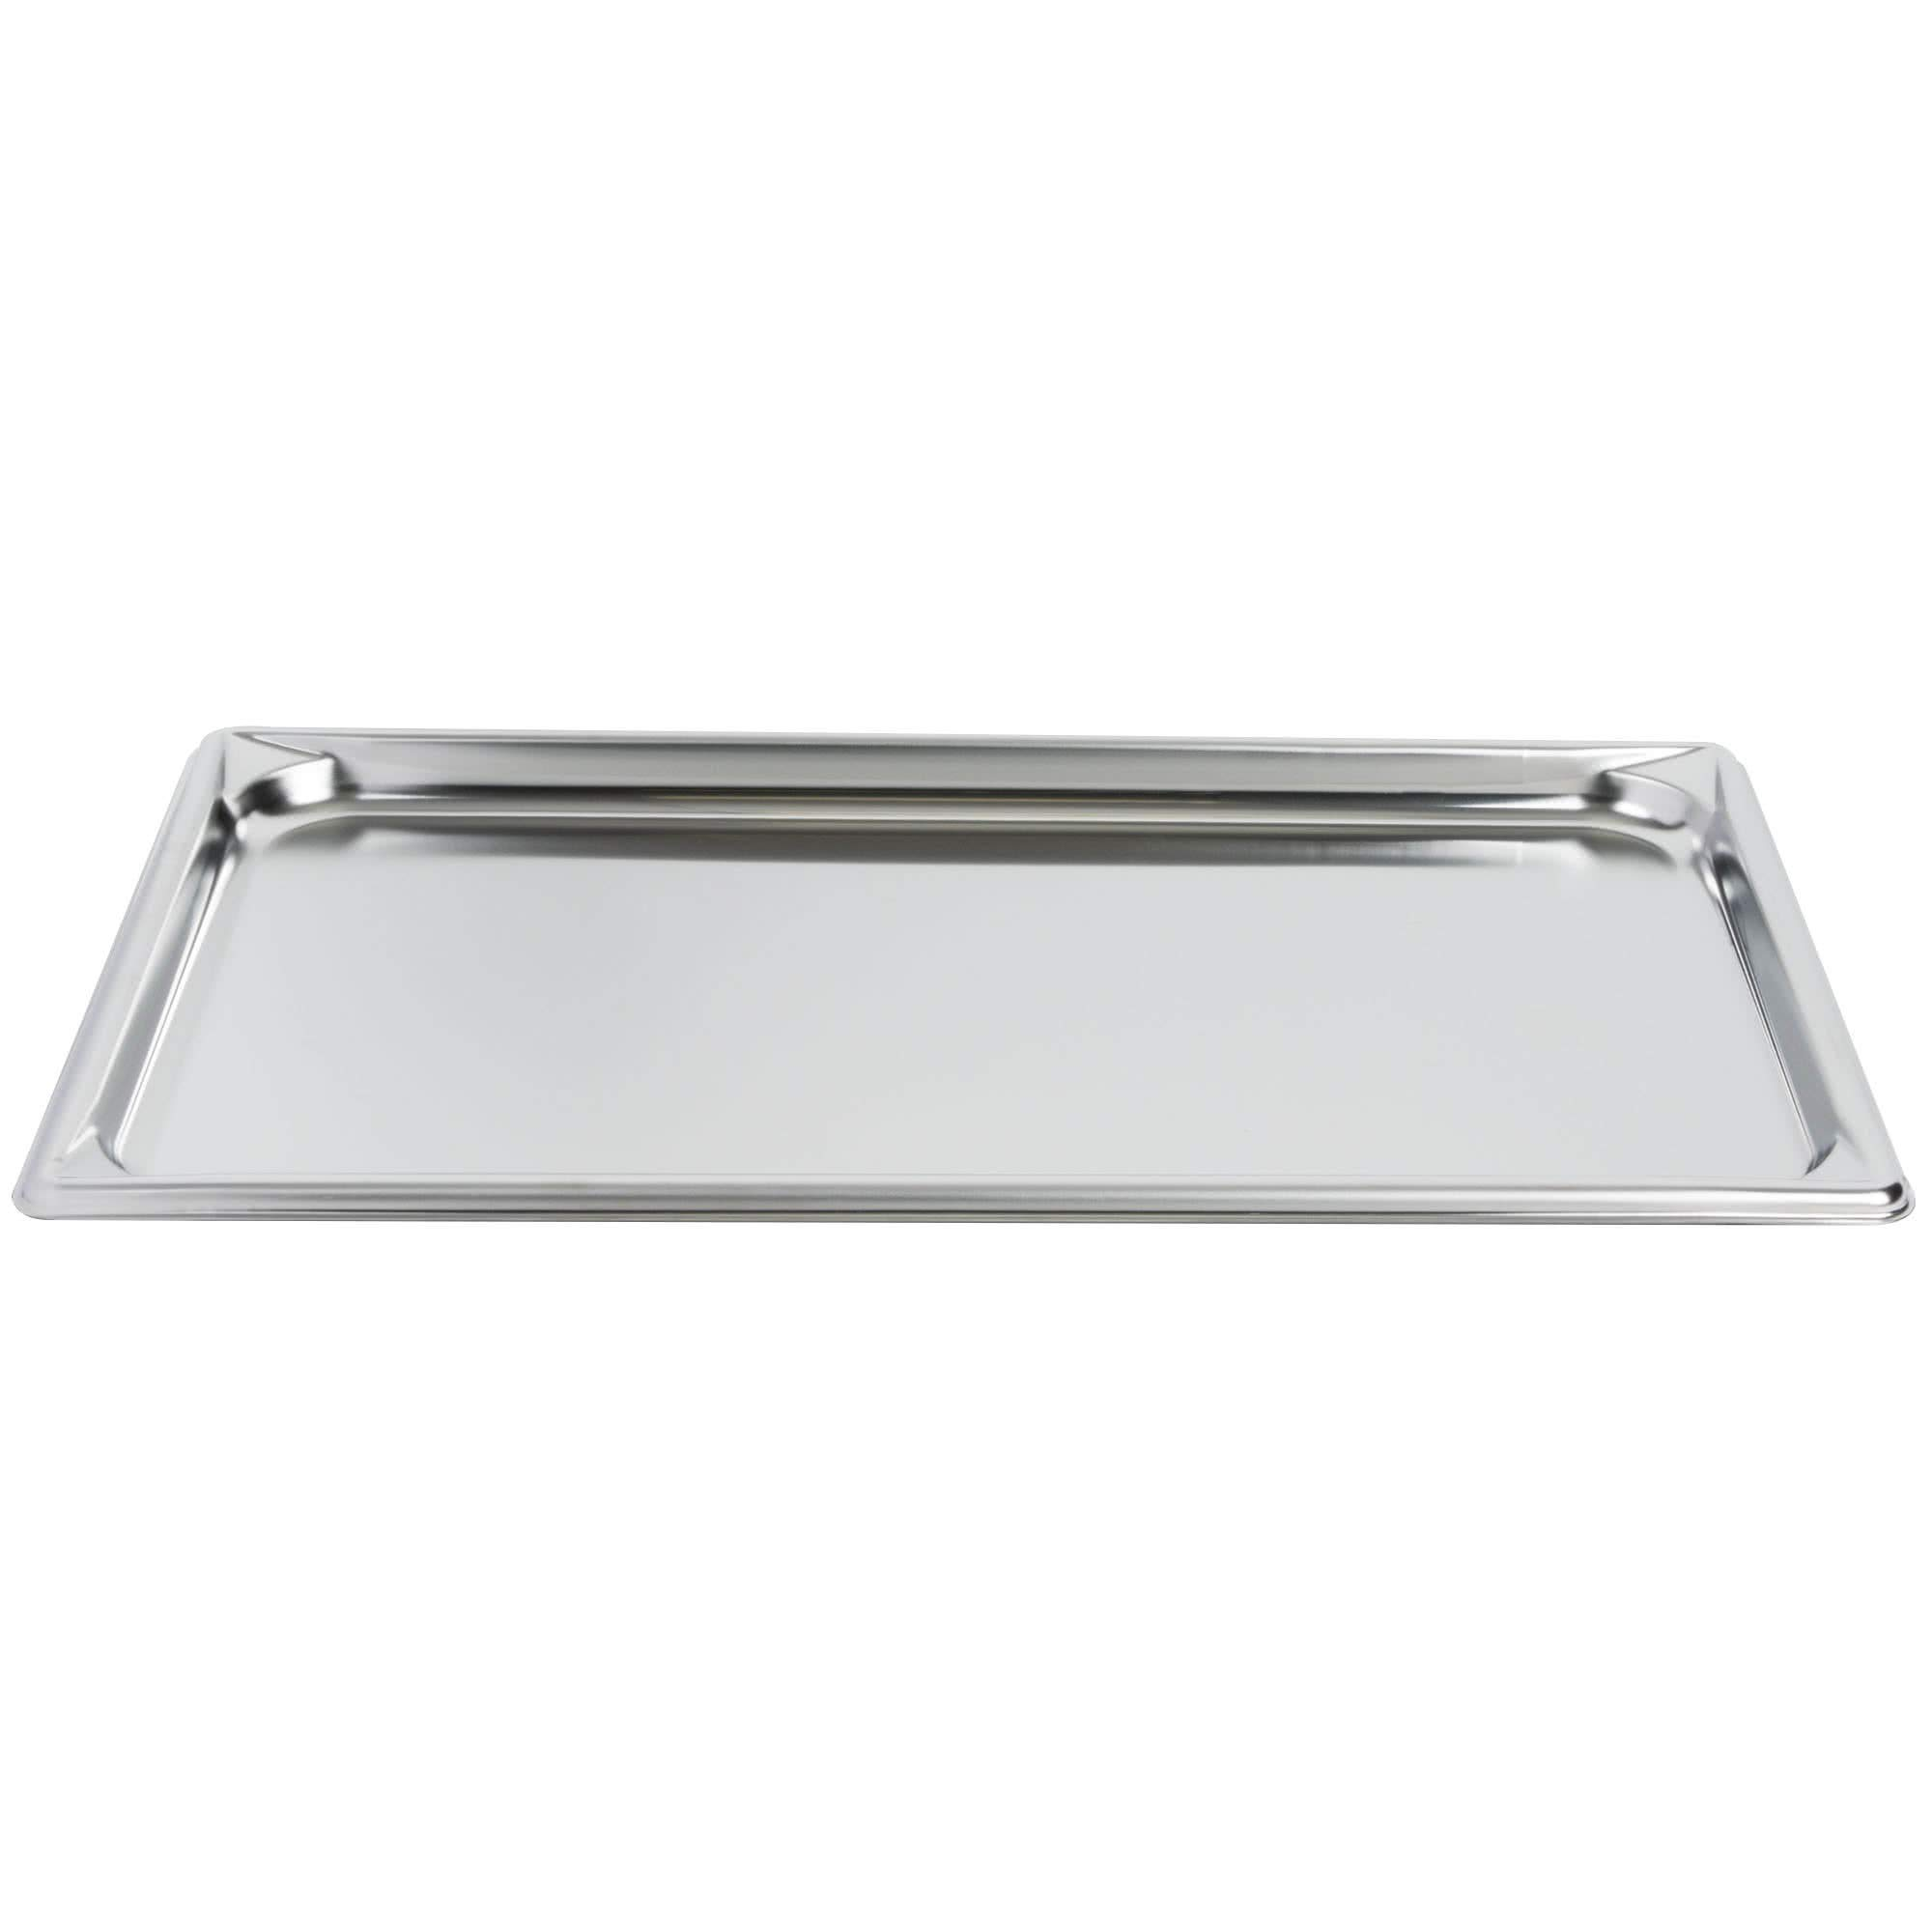 TableTop King 30002 Super Pan V Full Size Anti-Jam Stainless Steel Steam Table/Hotel Tray - 3/4'' Deep by TableTop King